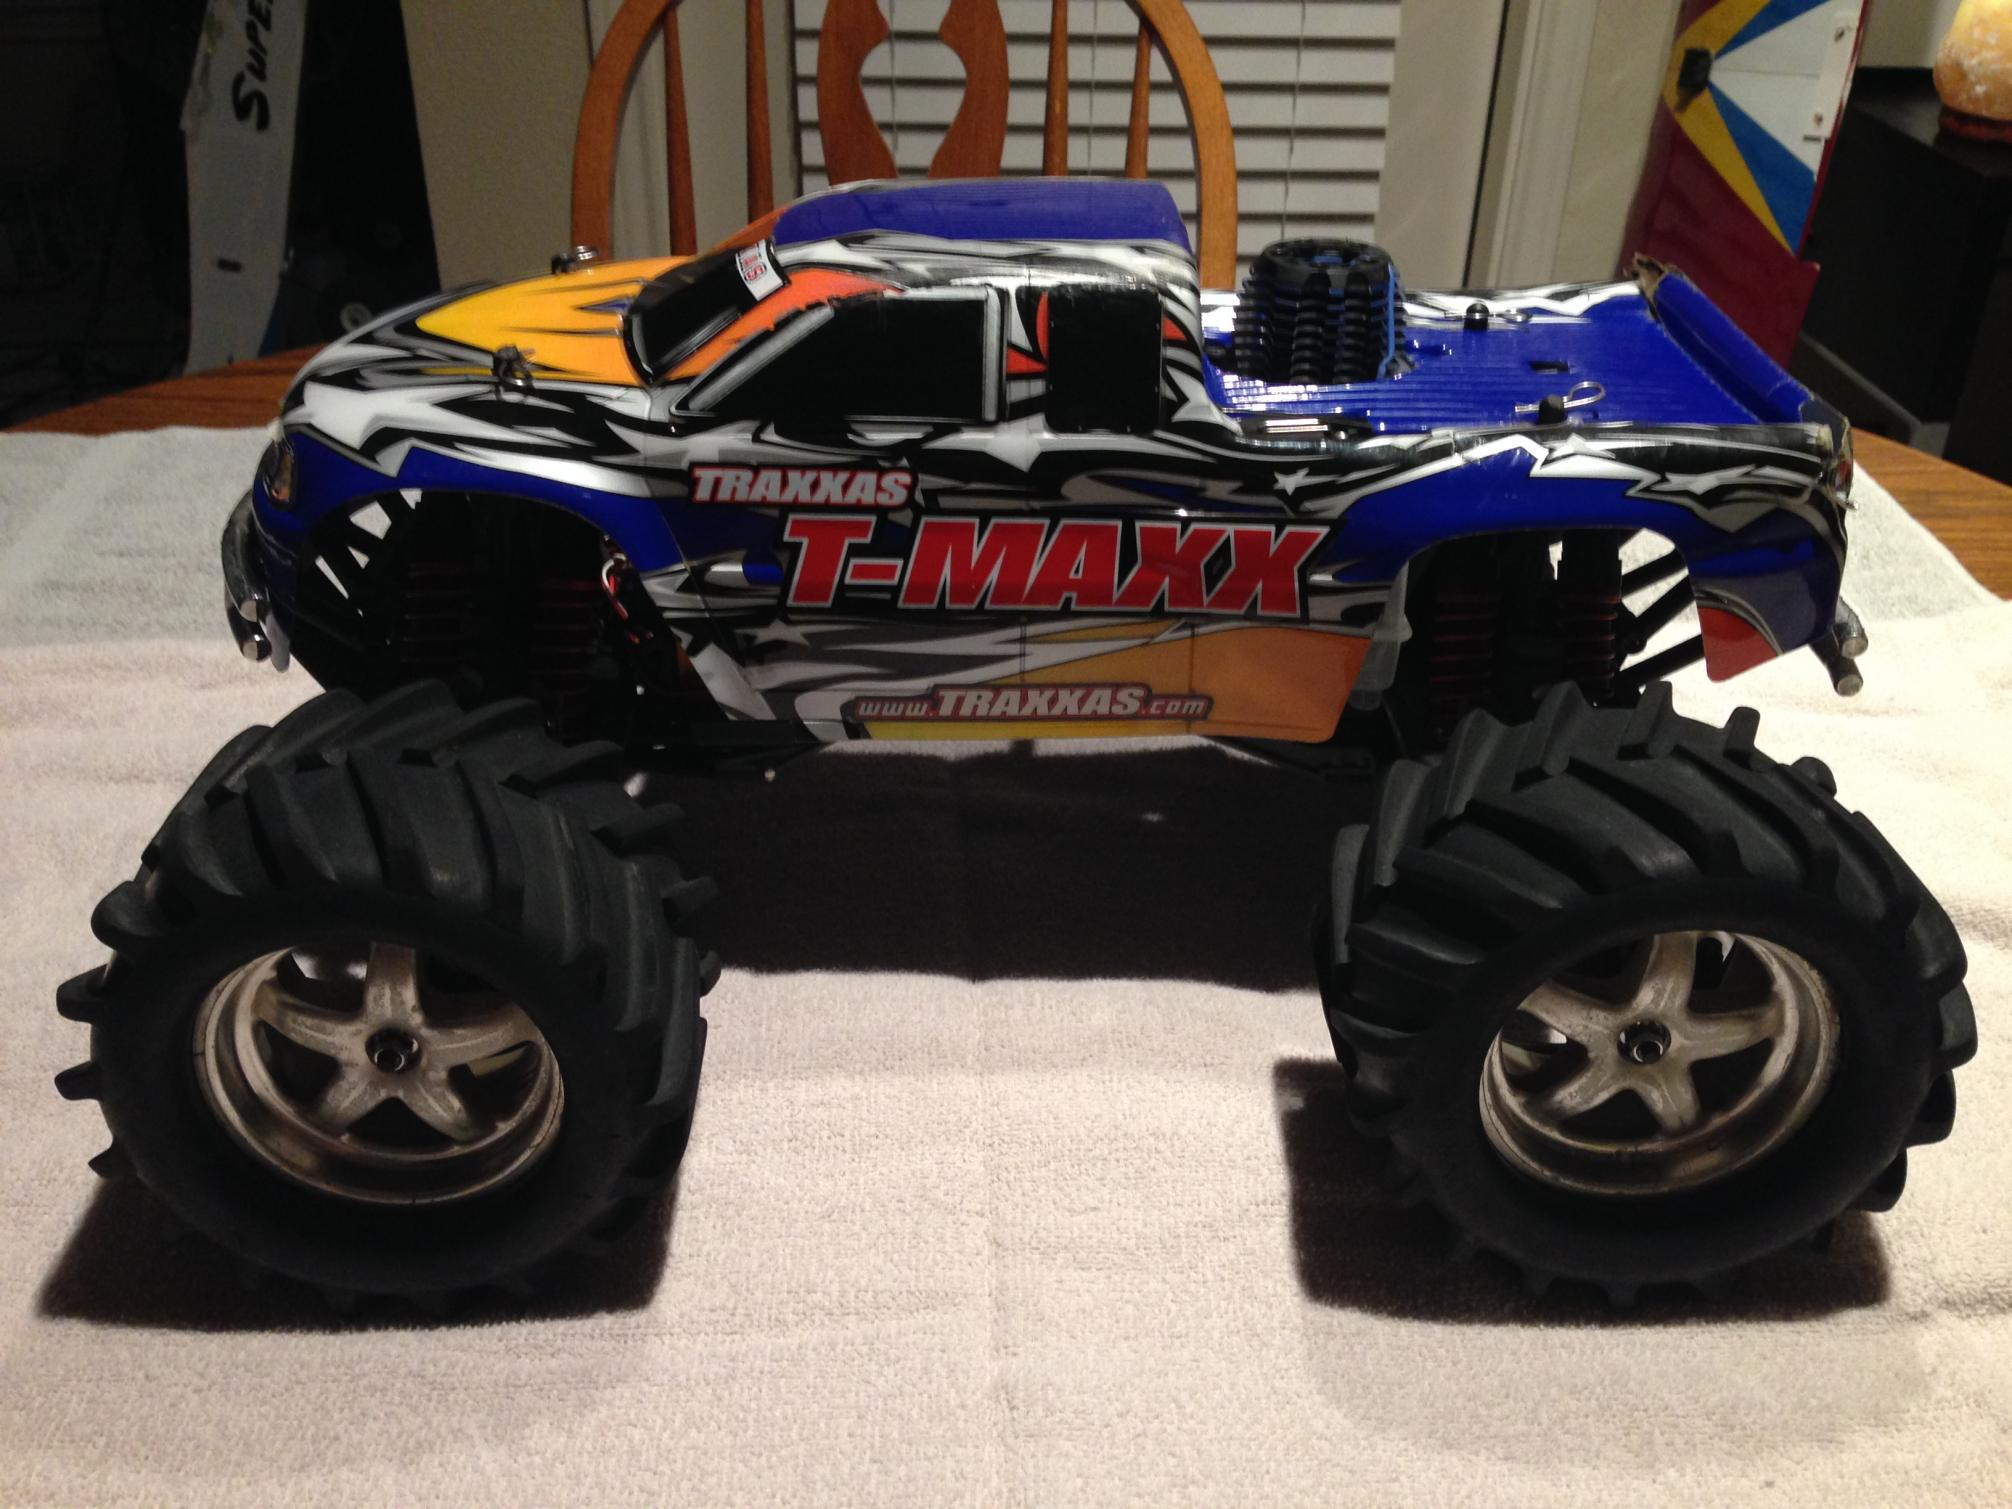 clean traxxas t maxx 2 5 with 3 3 engine and spares r c tech forums. Black Bedroom Furniture Sets. Home Design Ideas